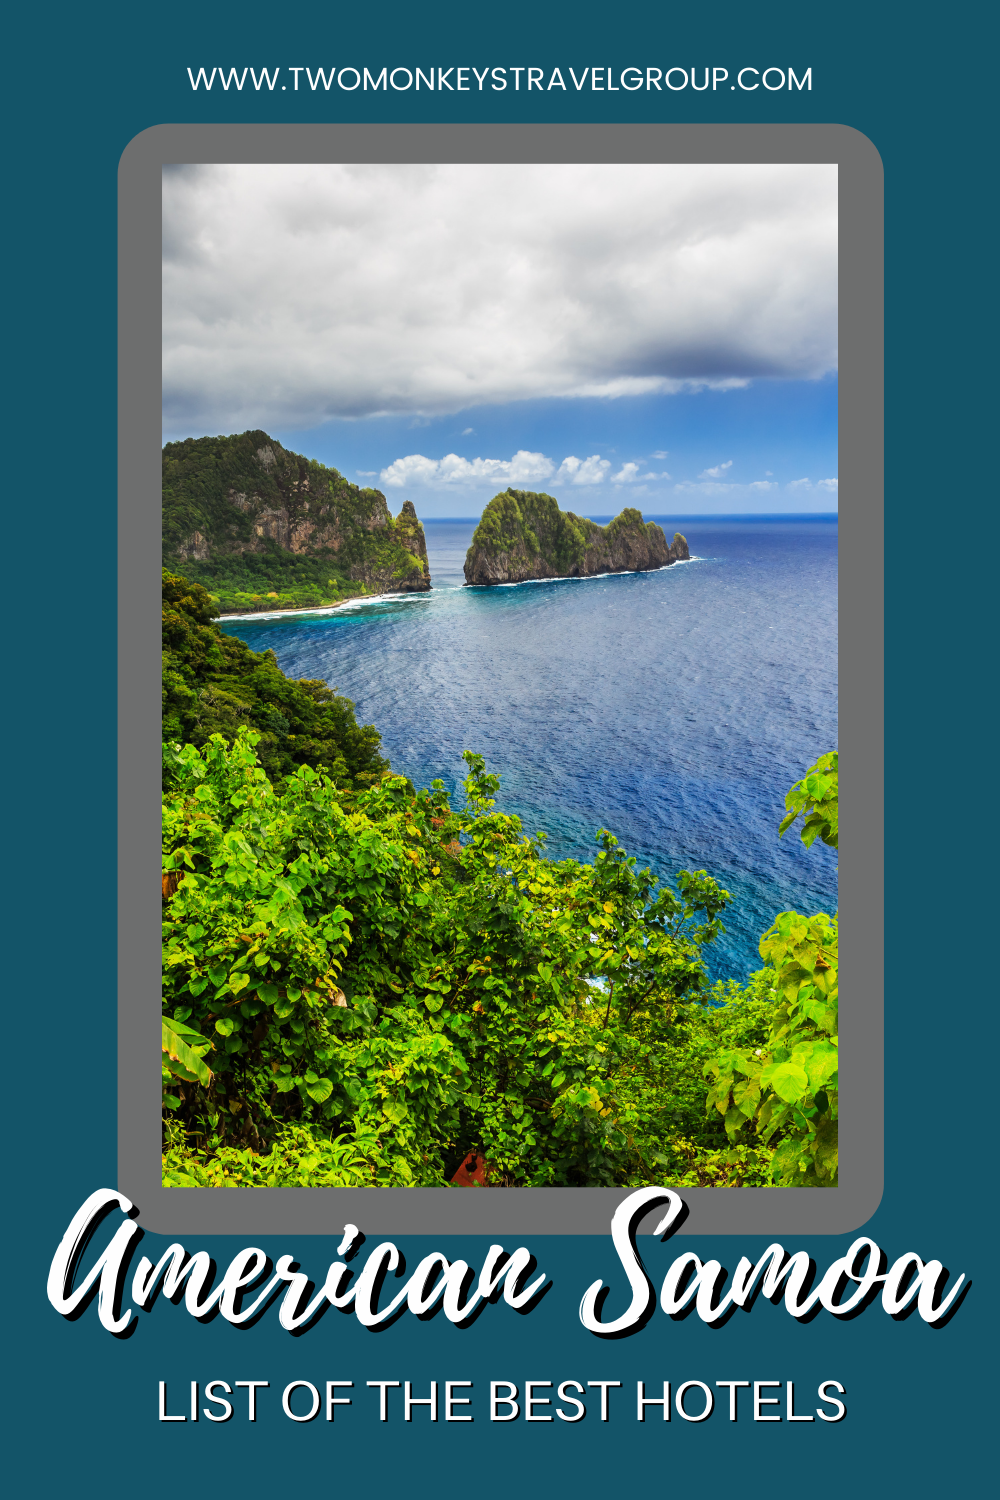 List of the Best Hotels in American Samoa